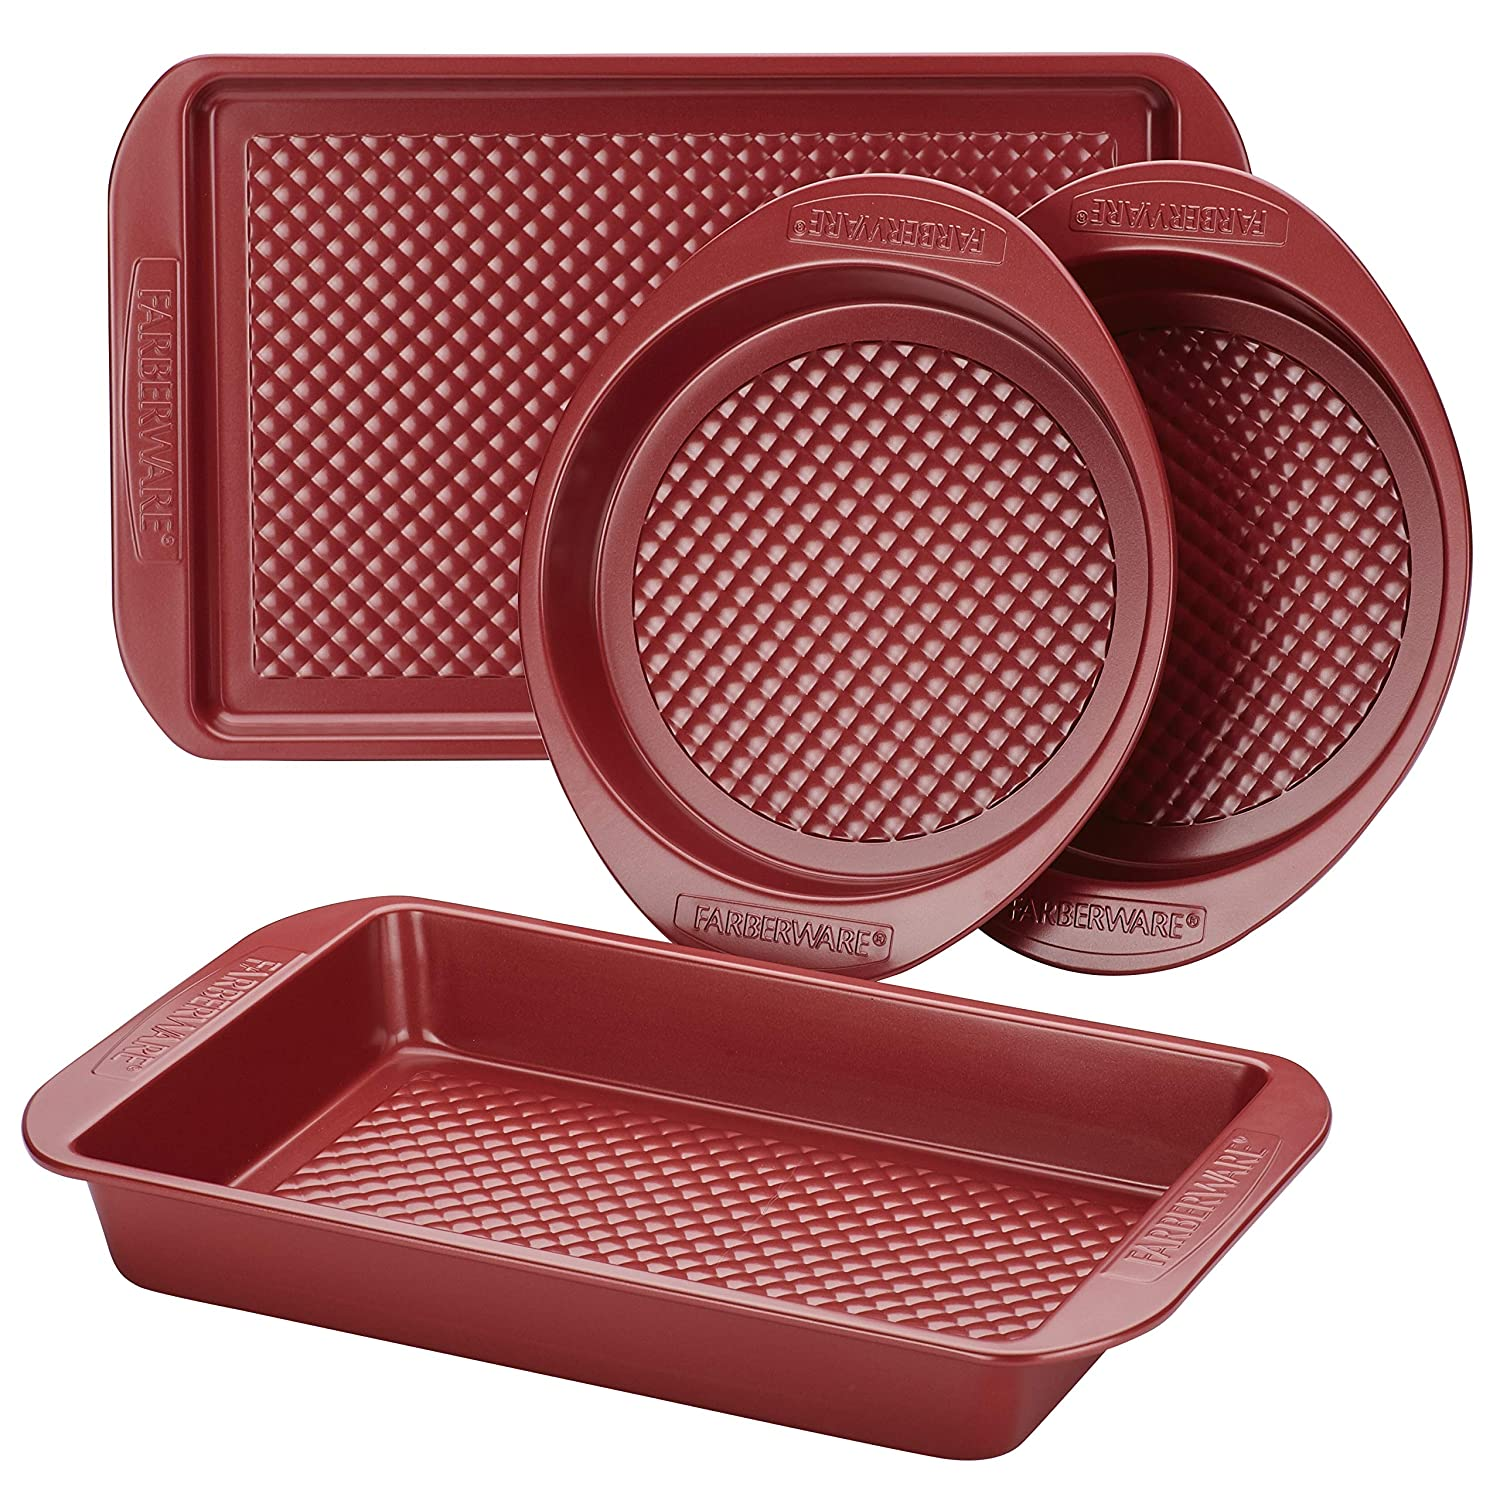 Farberware Colorvive Nonstick Bakeware Set, 4-Piece, Red